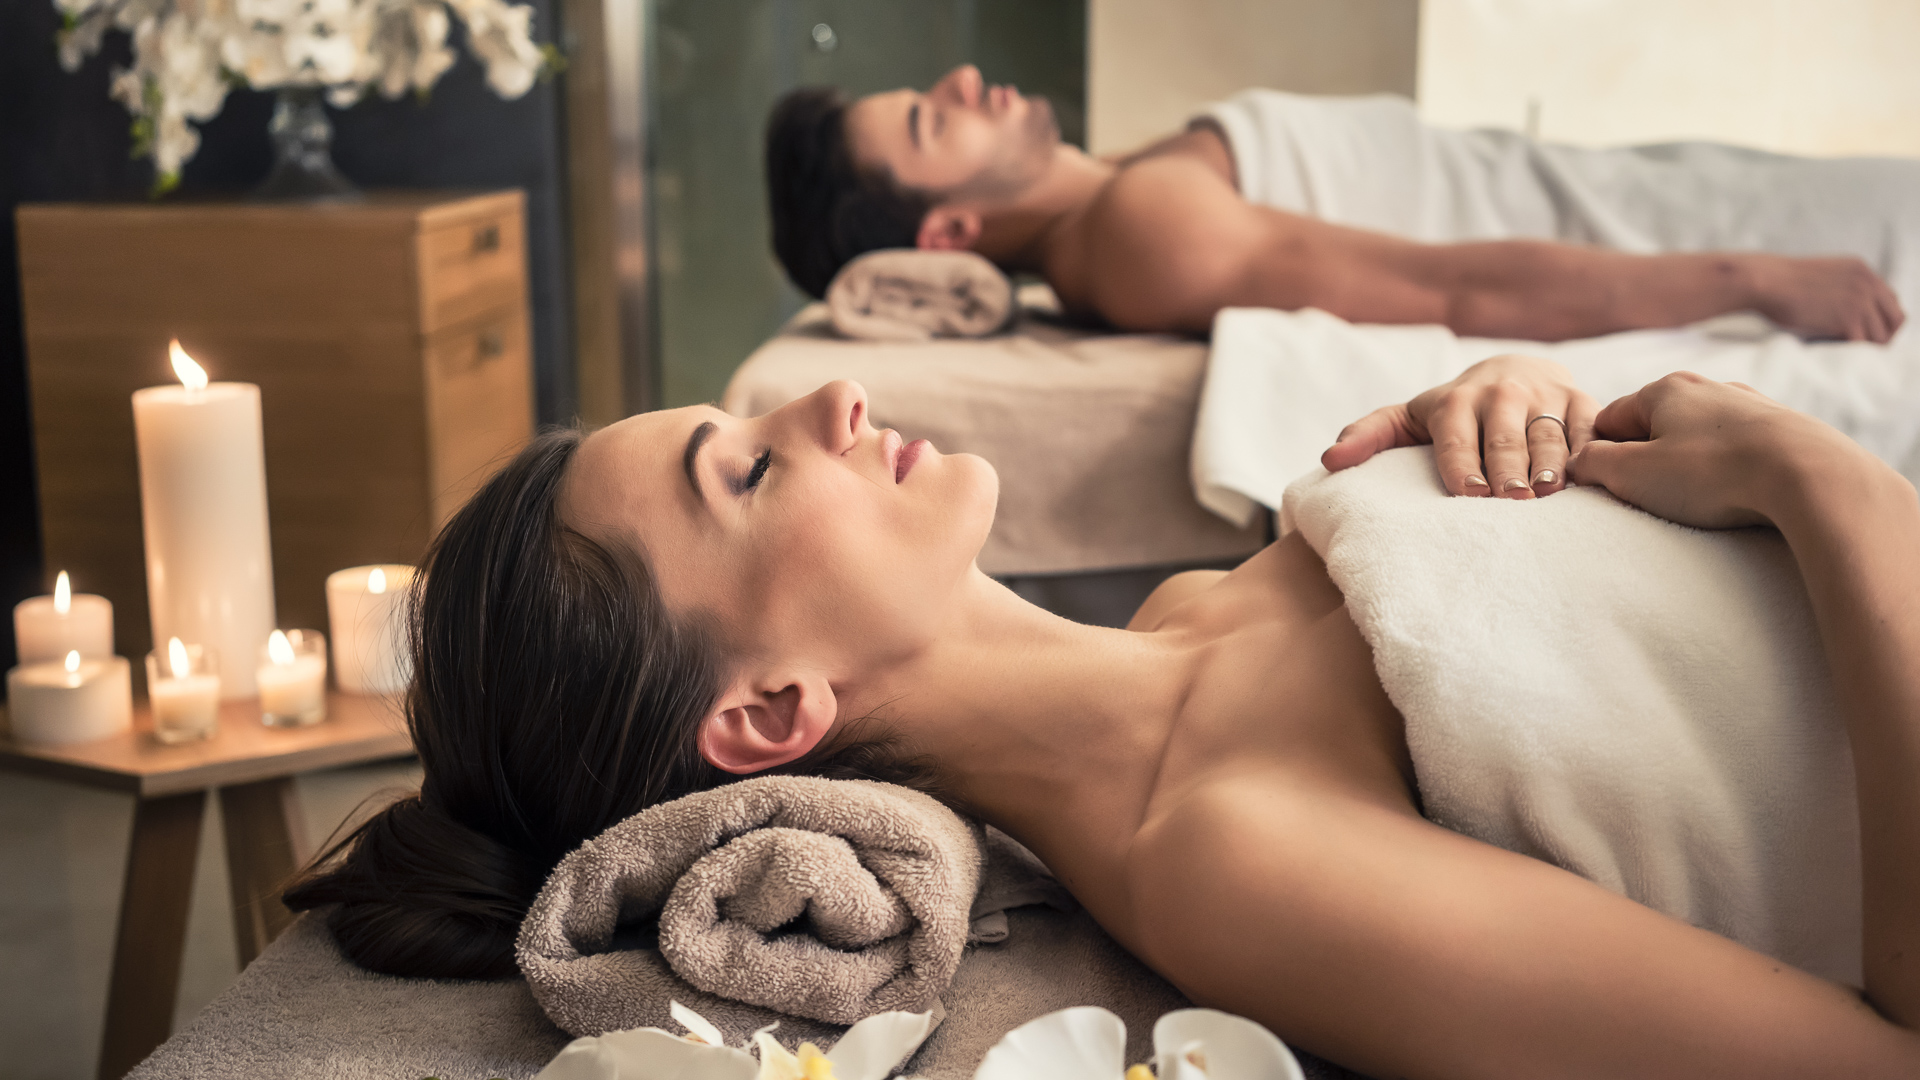 From in-room massages to multi-course meals made by gourmet chefs, the world's most expensive hotels offer plenty of luxury amenities for travelers to enjoy. However, you don't have to be a member of the upper crust to score some free perks on your next hotel stay.Even budget-friendly hotel chains provide some nifty freebies to lure guests. Forget about free soap and Wi-Fi; these days, visitors can score fresh-baked cookies, designer bath salts and even yoga mats to use during their stays.Before embarking on your next business trip or vacation, call your hotel to see if you qualify for these freebies designed to make your stay that much more enjoyable.